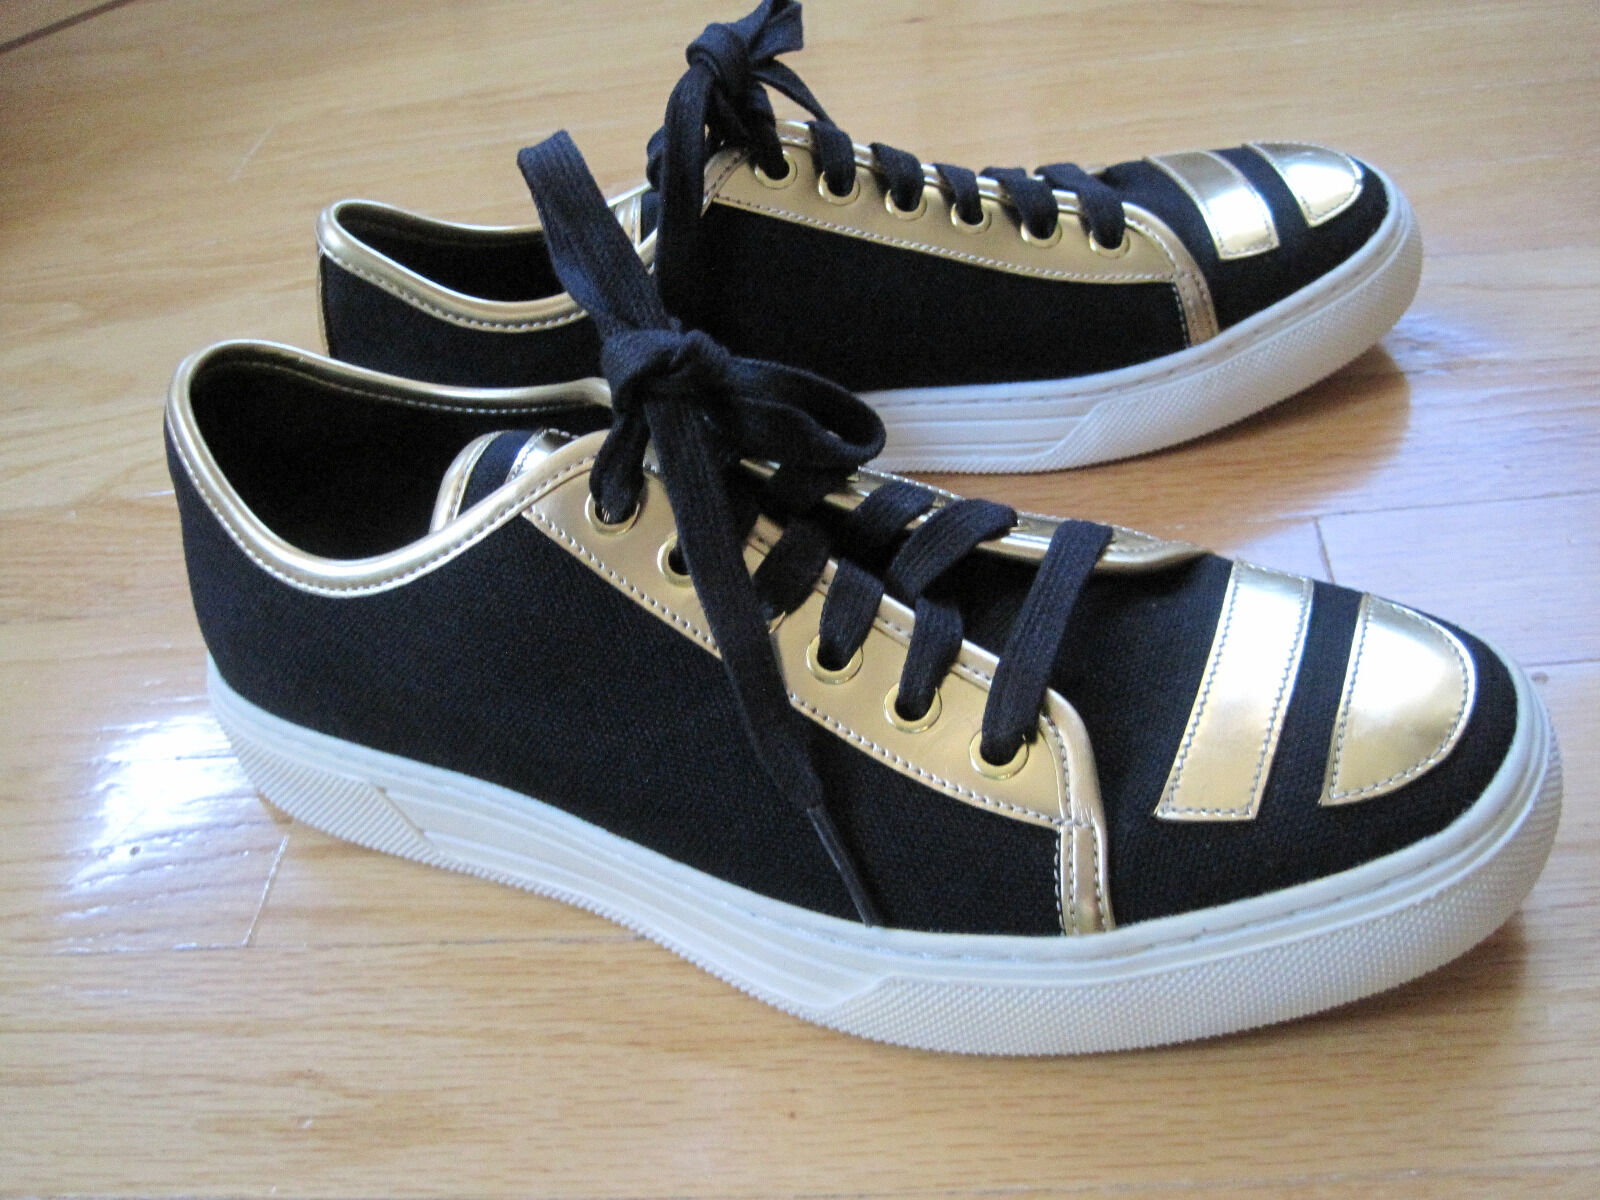 NEW ALEJANDRO INGELMO BLACK CANVAS gold LEATHER SNEAKERS SHOE SIZE SIZE SIZE 9M a54847